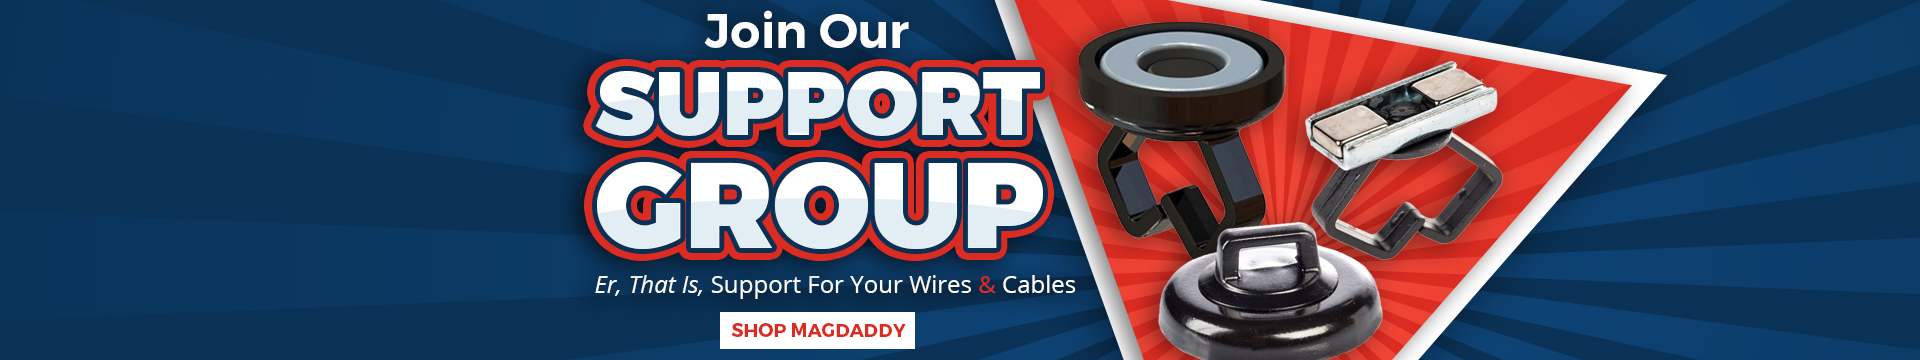 Cable Support Systems from MagDaddy